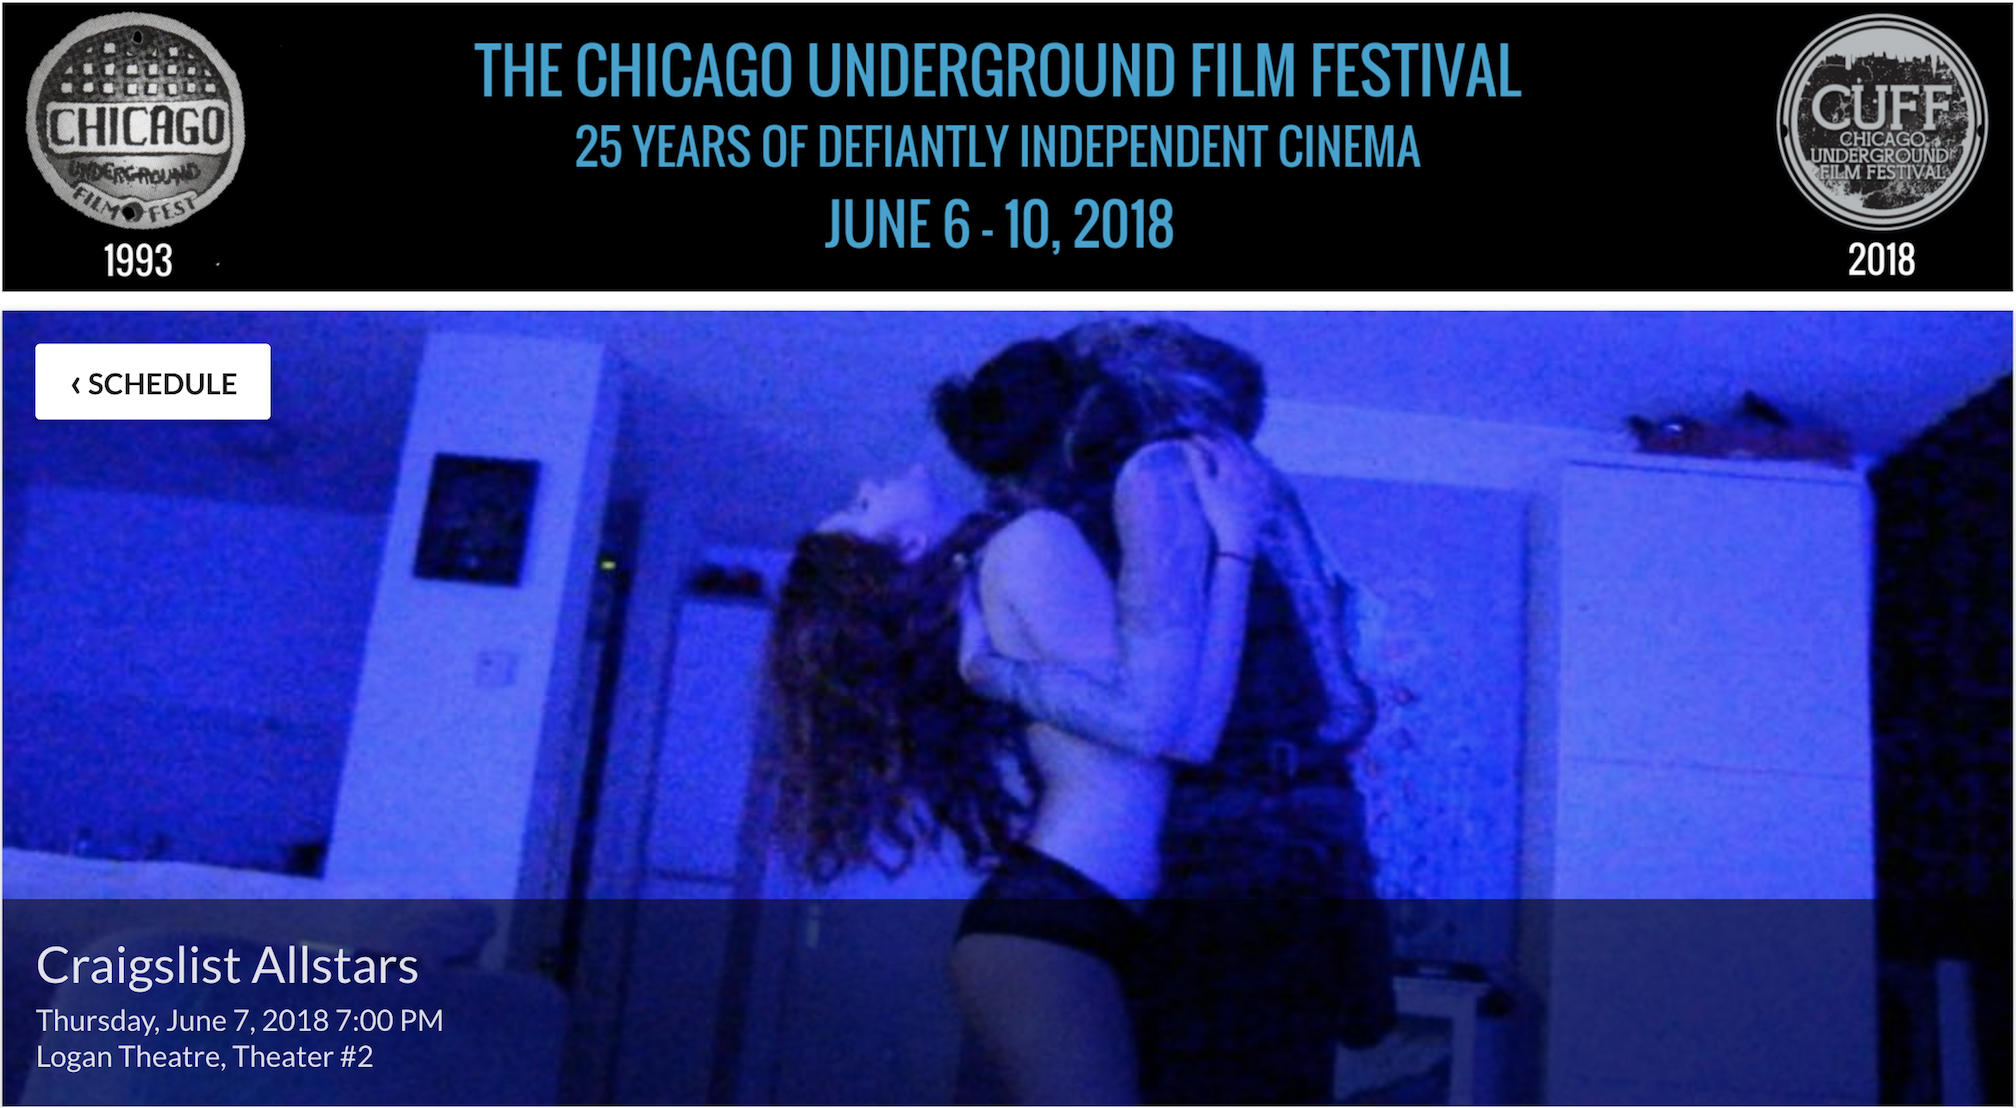 Craigslist Allstars playing at The Chicago Underground Film Festival 7th of June.